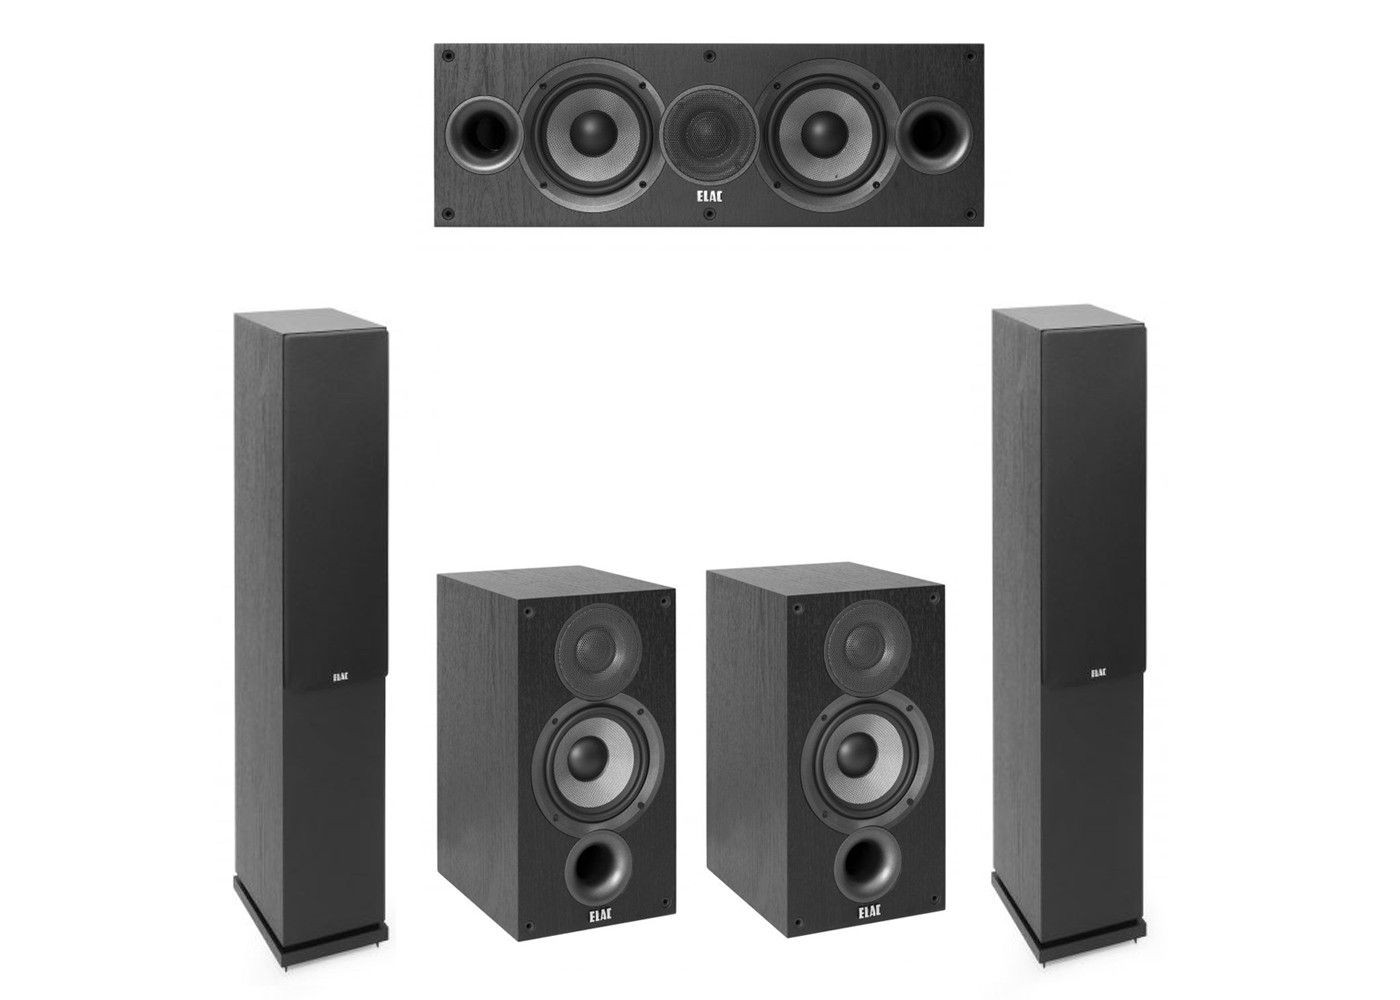 Elac 5 0 System With 2 F5 2 Floorstanding Speakers 1 C5 2 Center